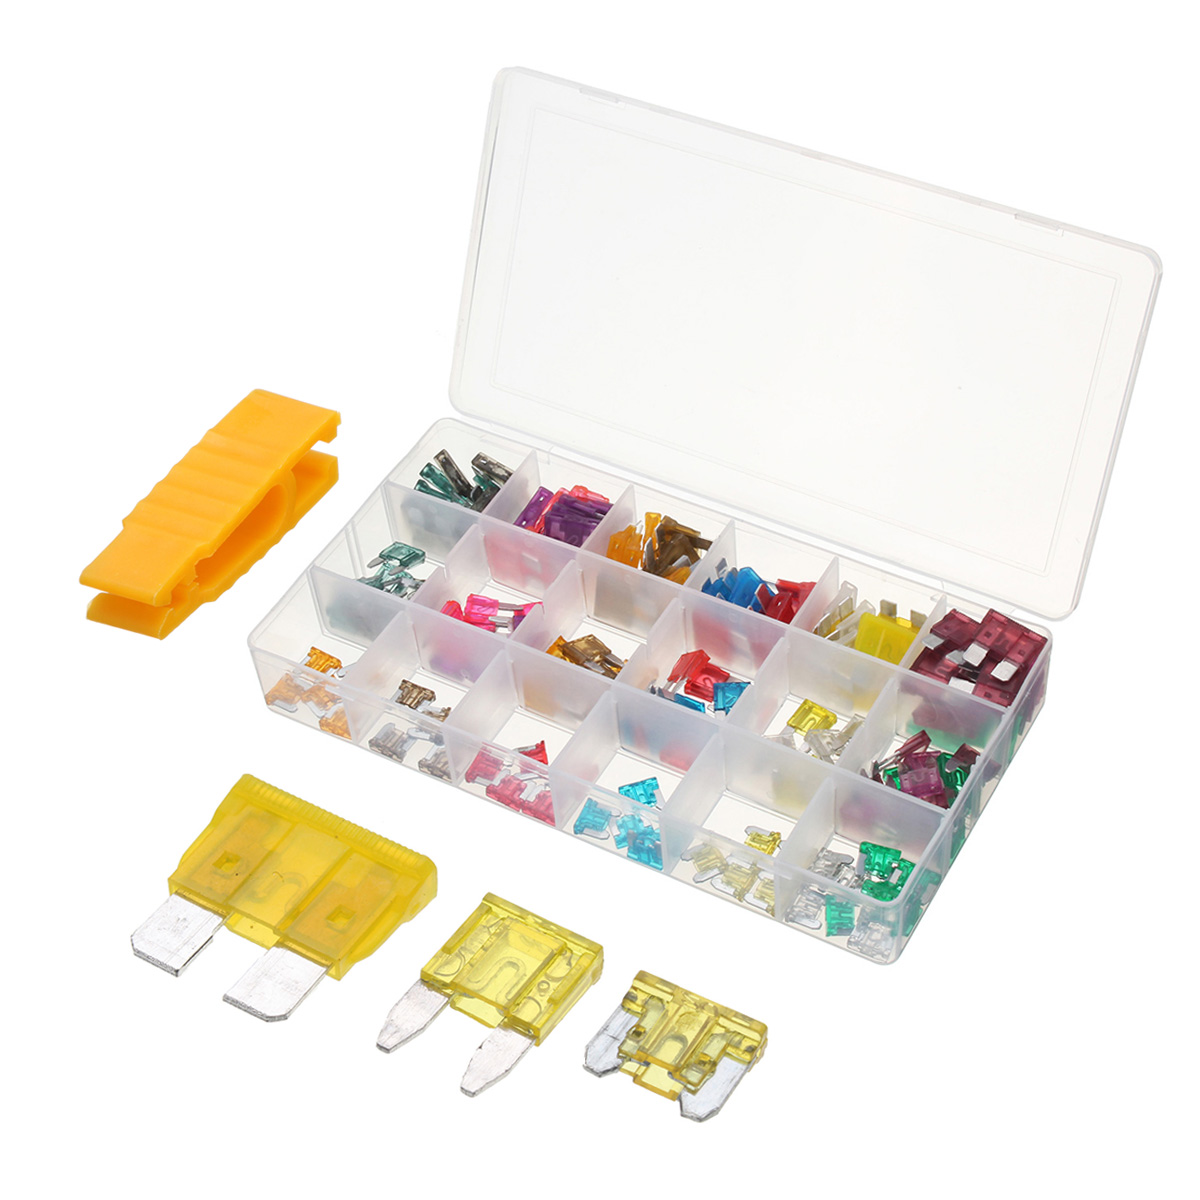 hight resolution of  fuse assortment kit box 1 40 amp 8bc400ca 3863 40aa be70 3af7b8f10a93 jpg